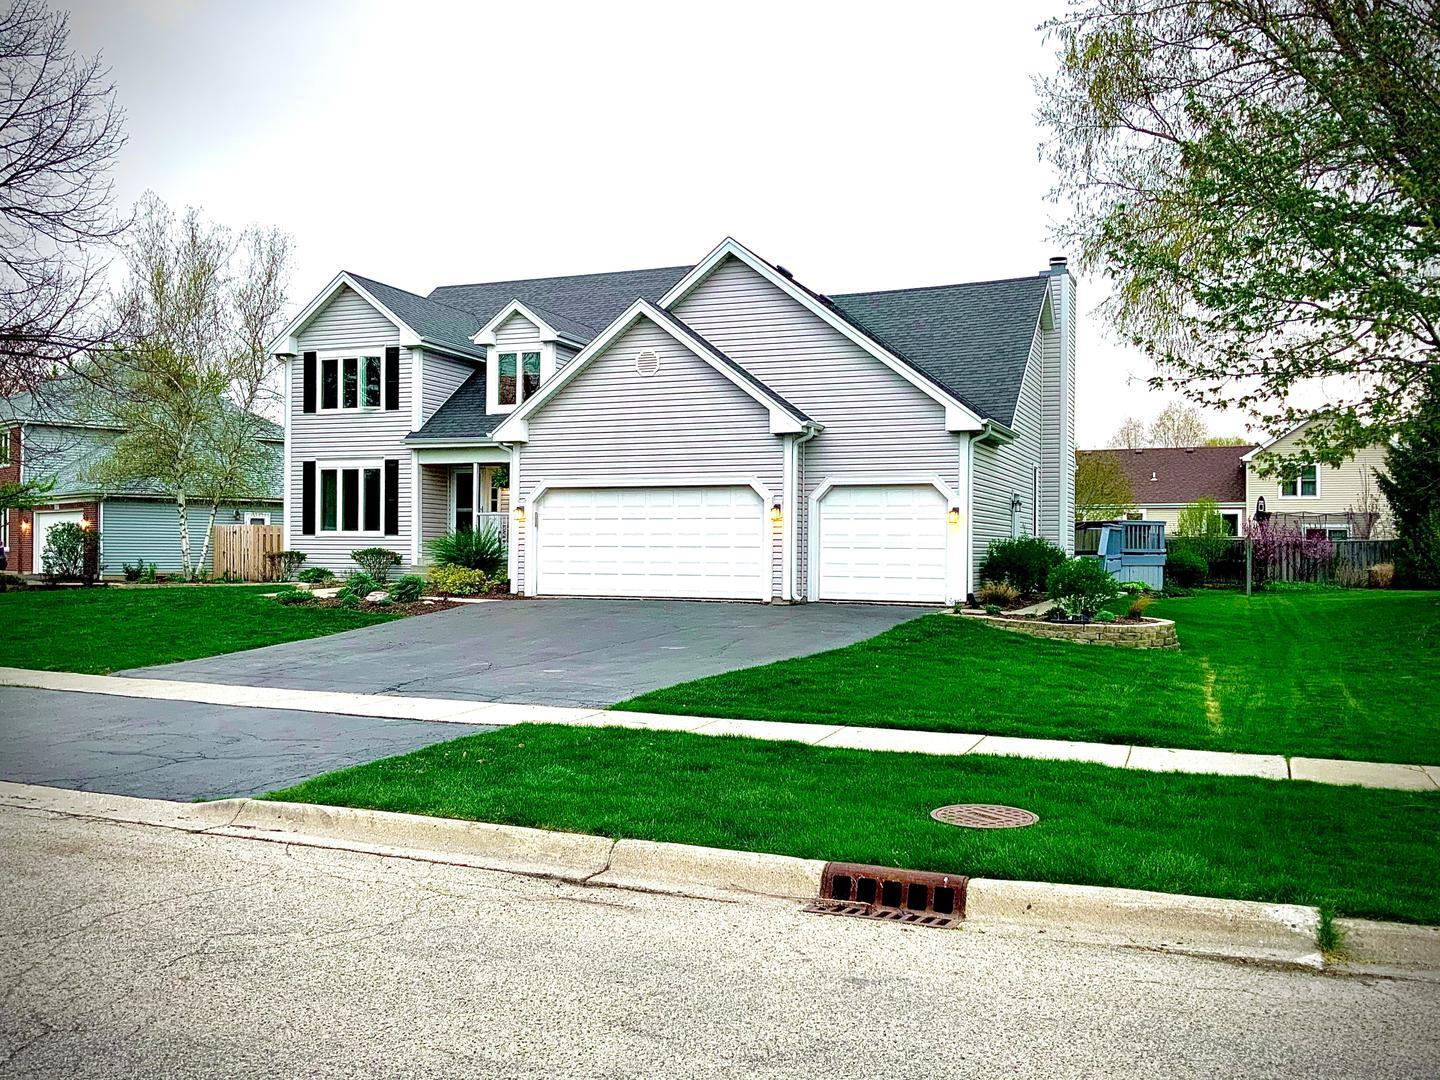 1133 Dovercliff Way, Crystal Lake, IL 60014 - #: 11070256